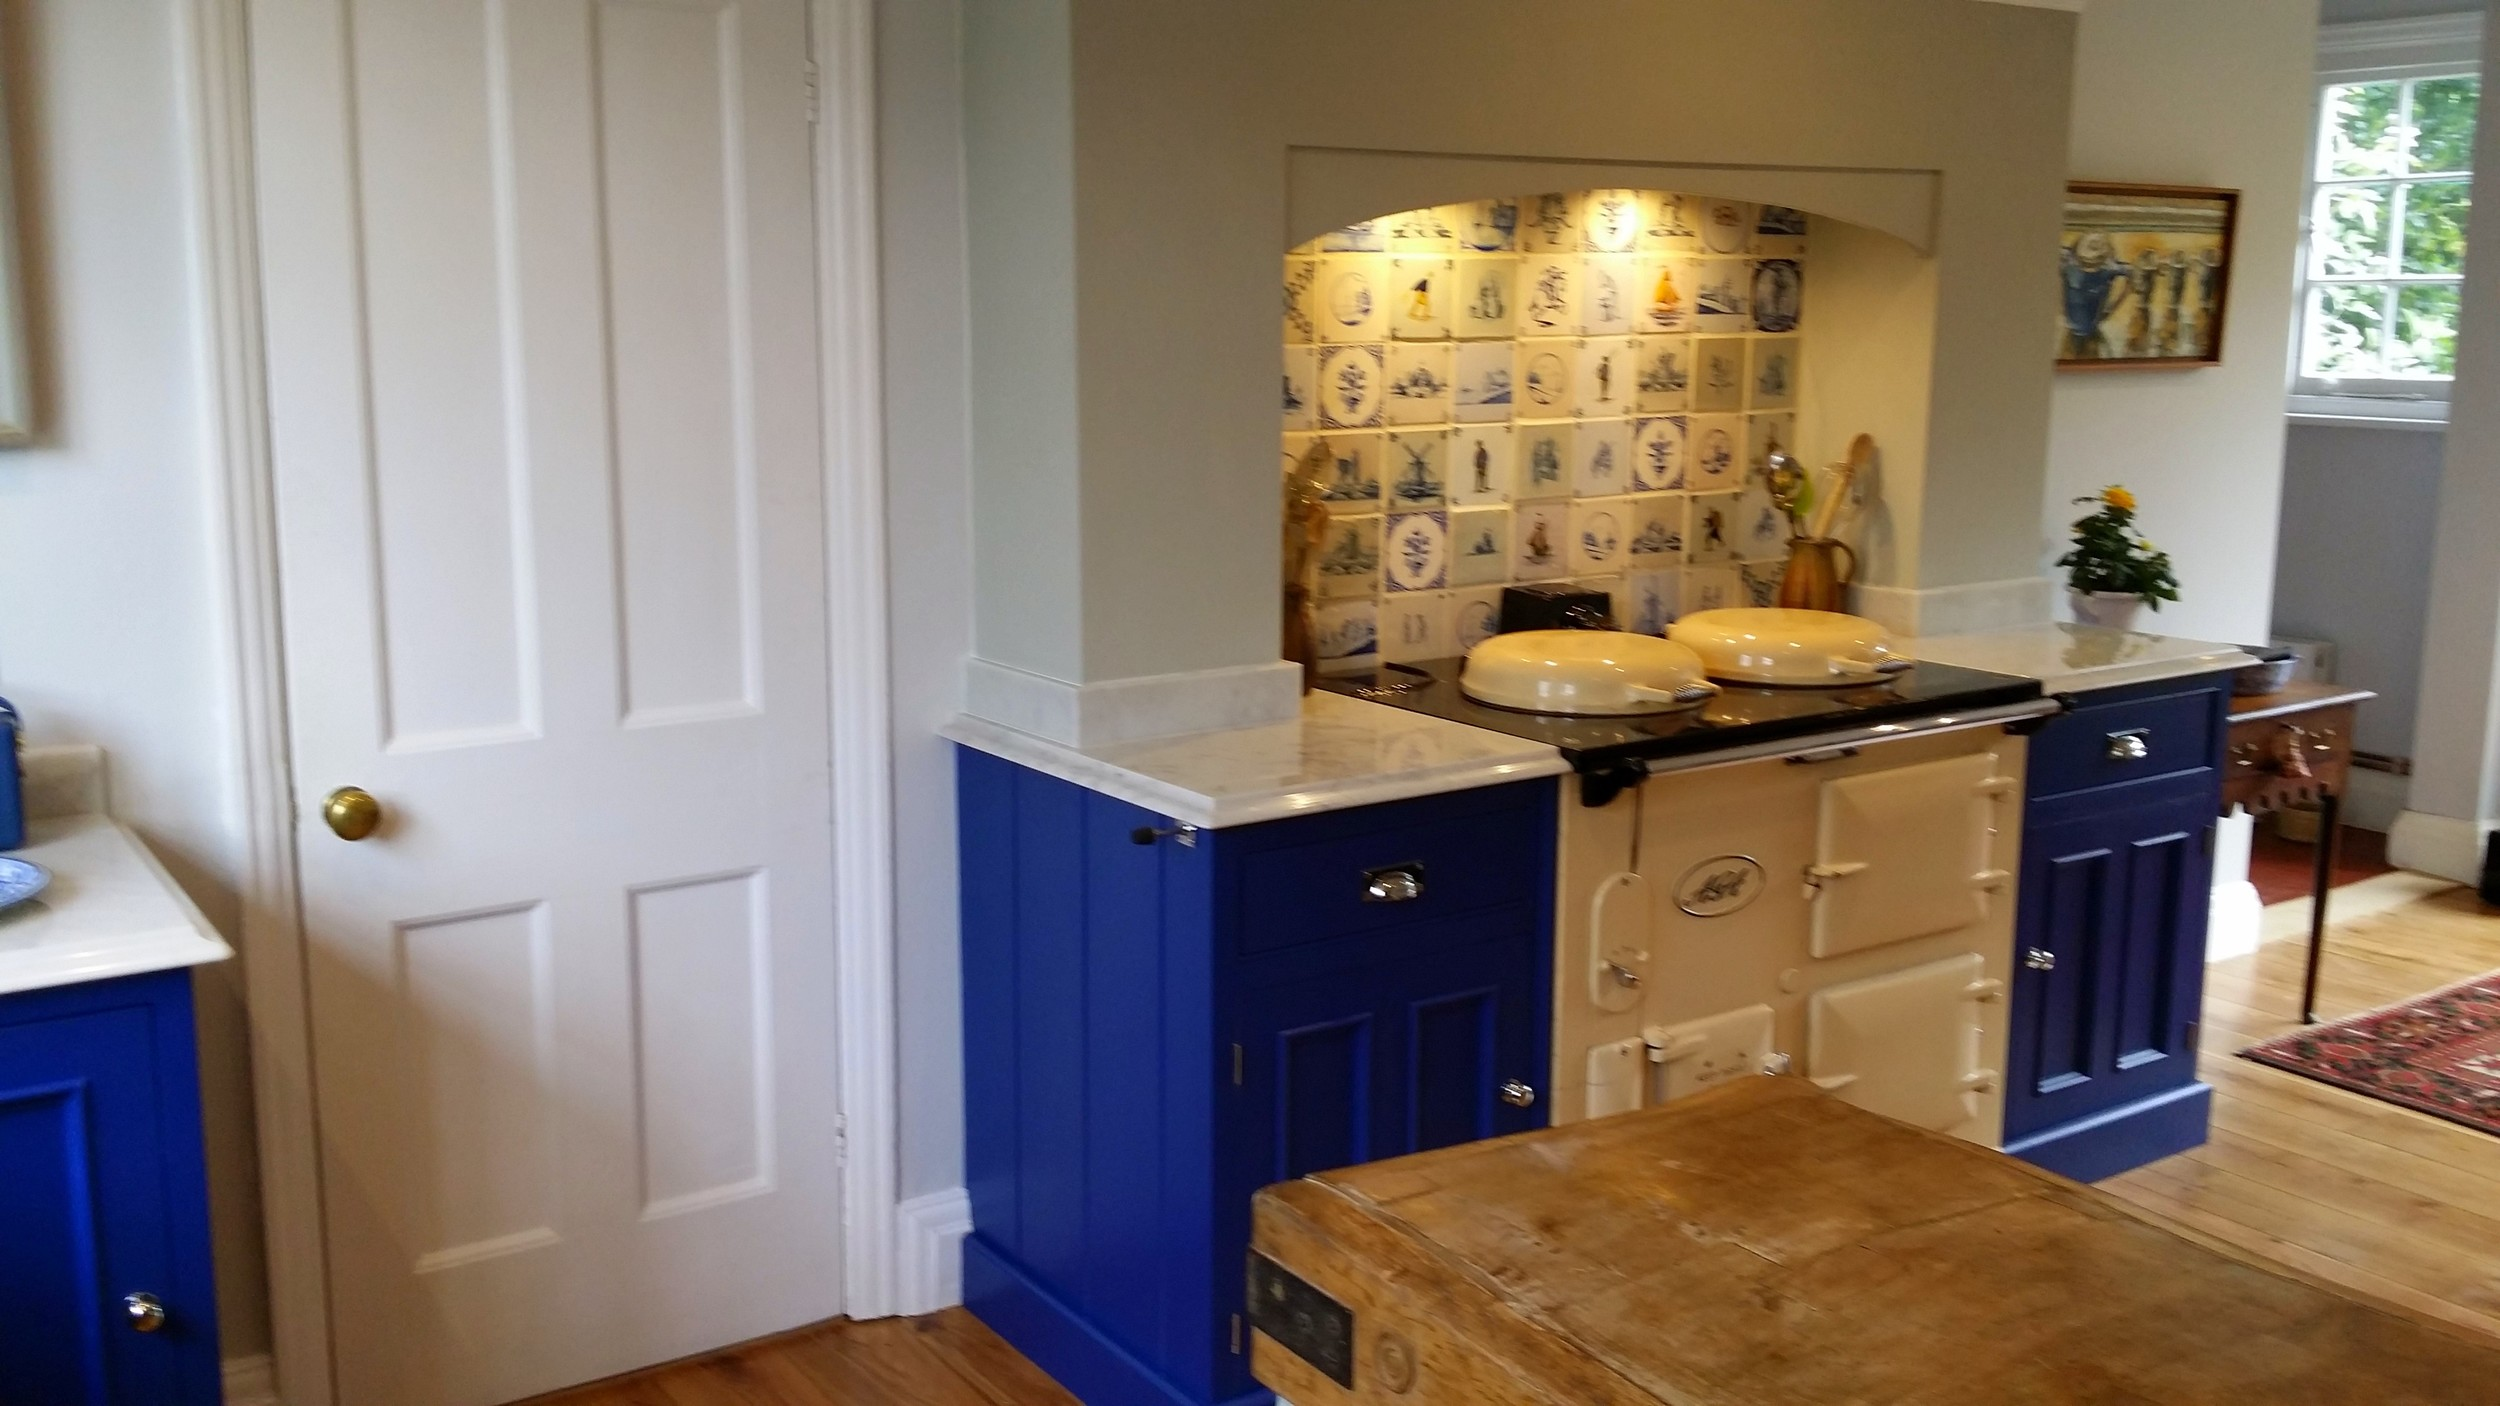 A dream kitchen handmade units and Aga